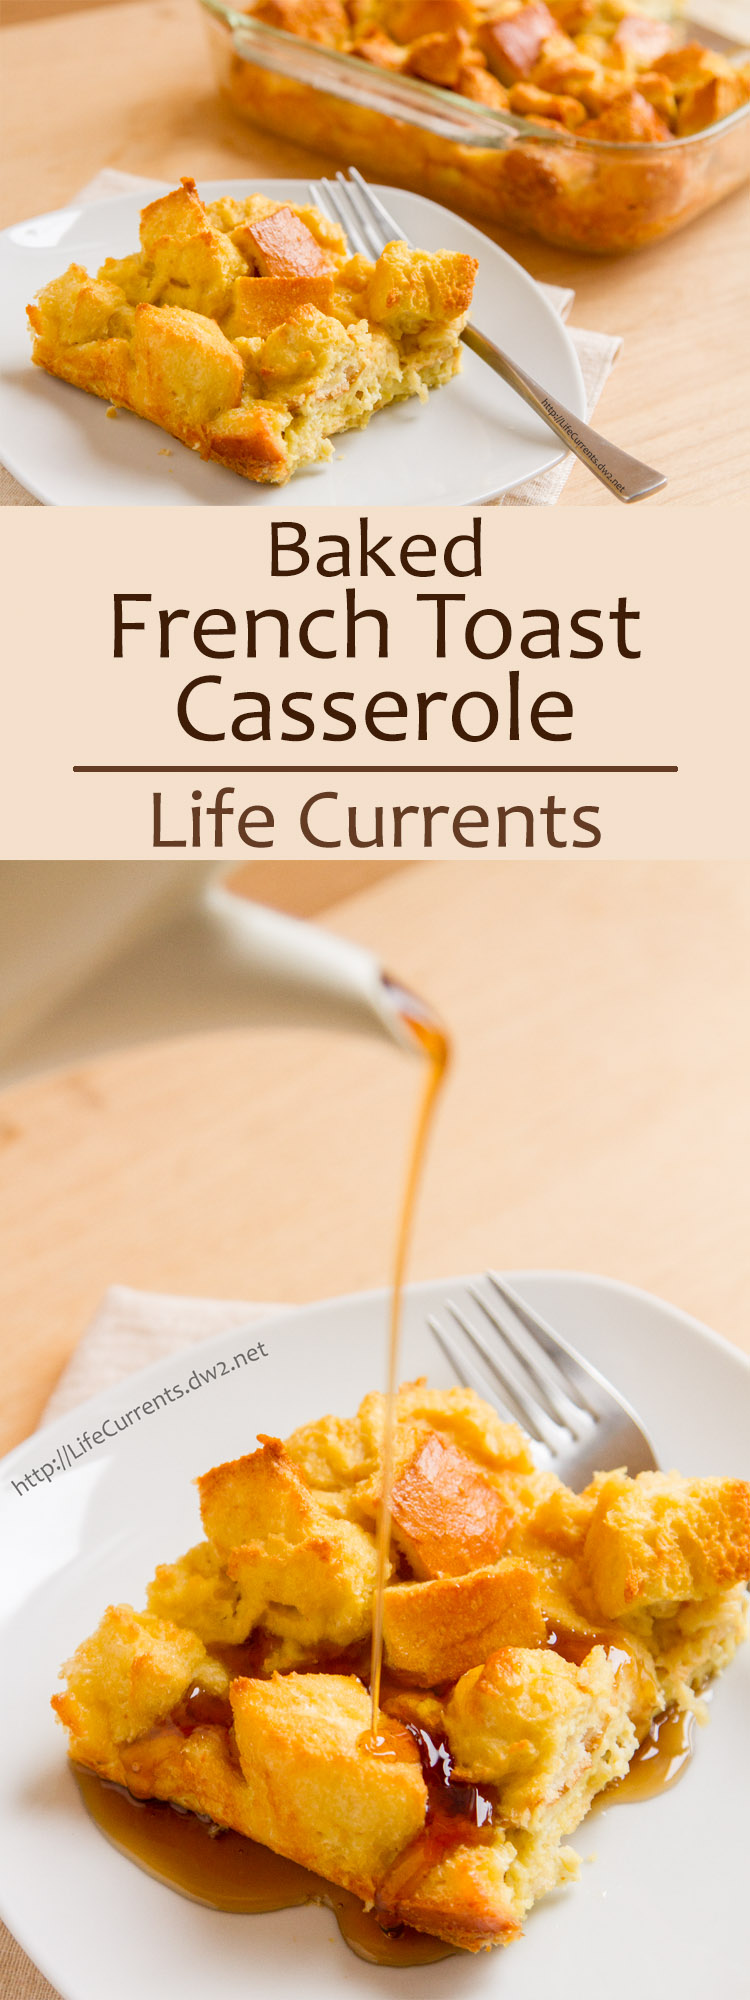 This easy to make eggy buttery Baked French Toast Casserole is best reason to get out of bed!